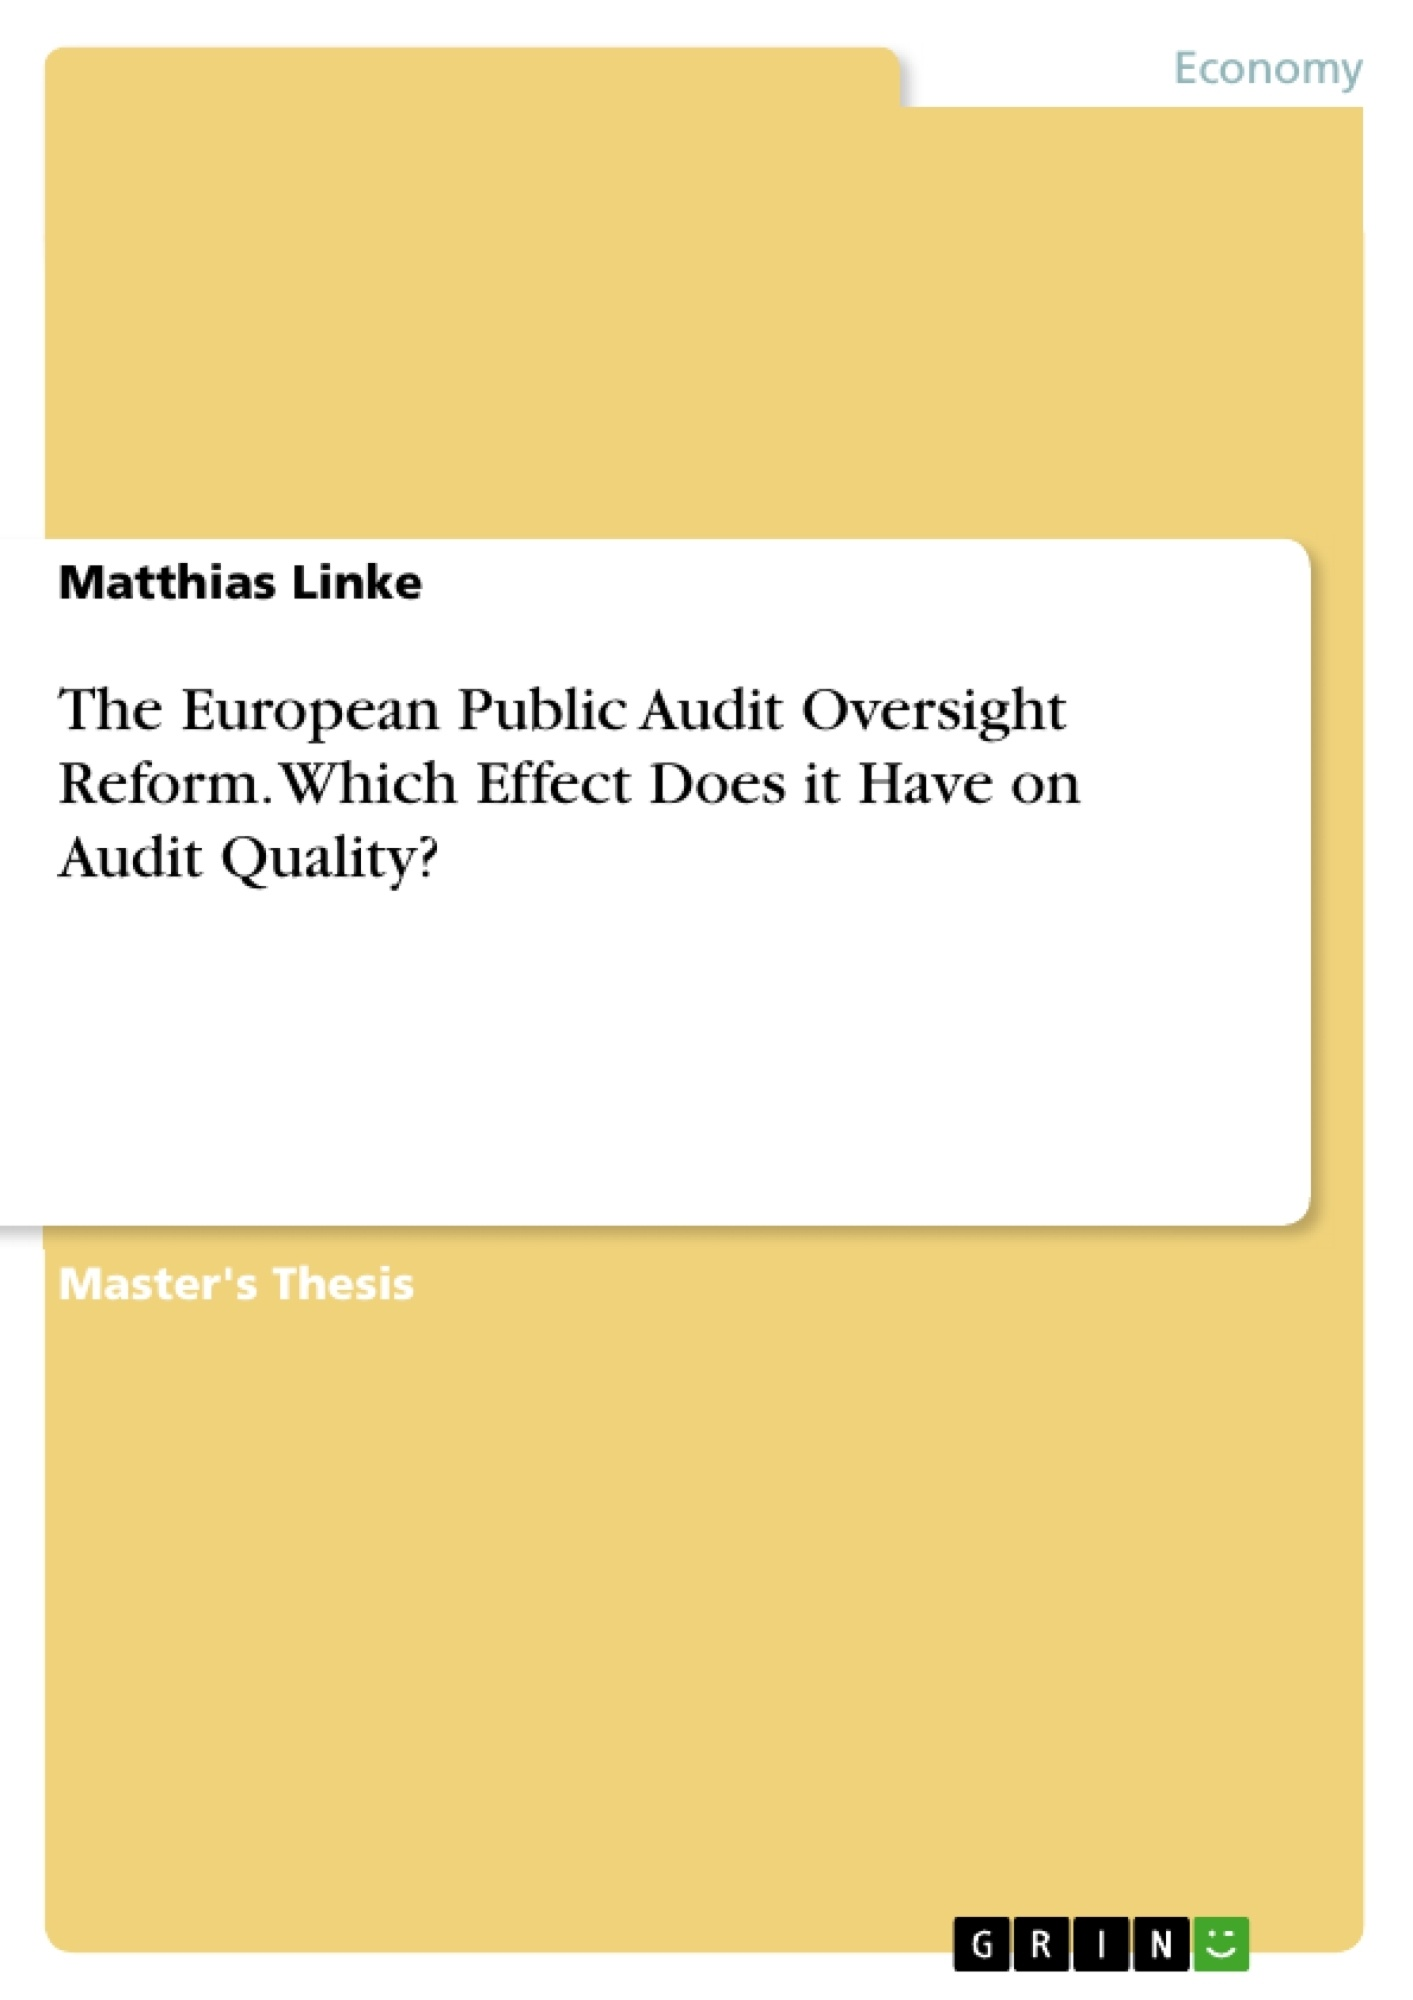 Title: The European Public Audit Oversight Reform. Which Effect Does it Have on Audit Quality?